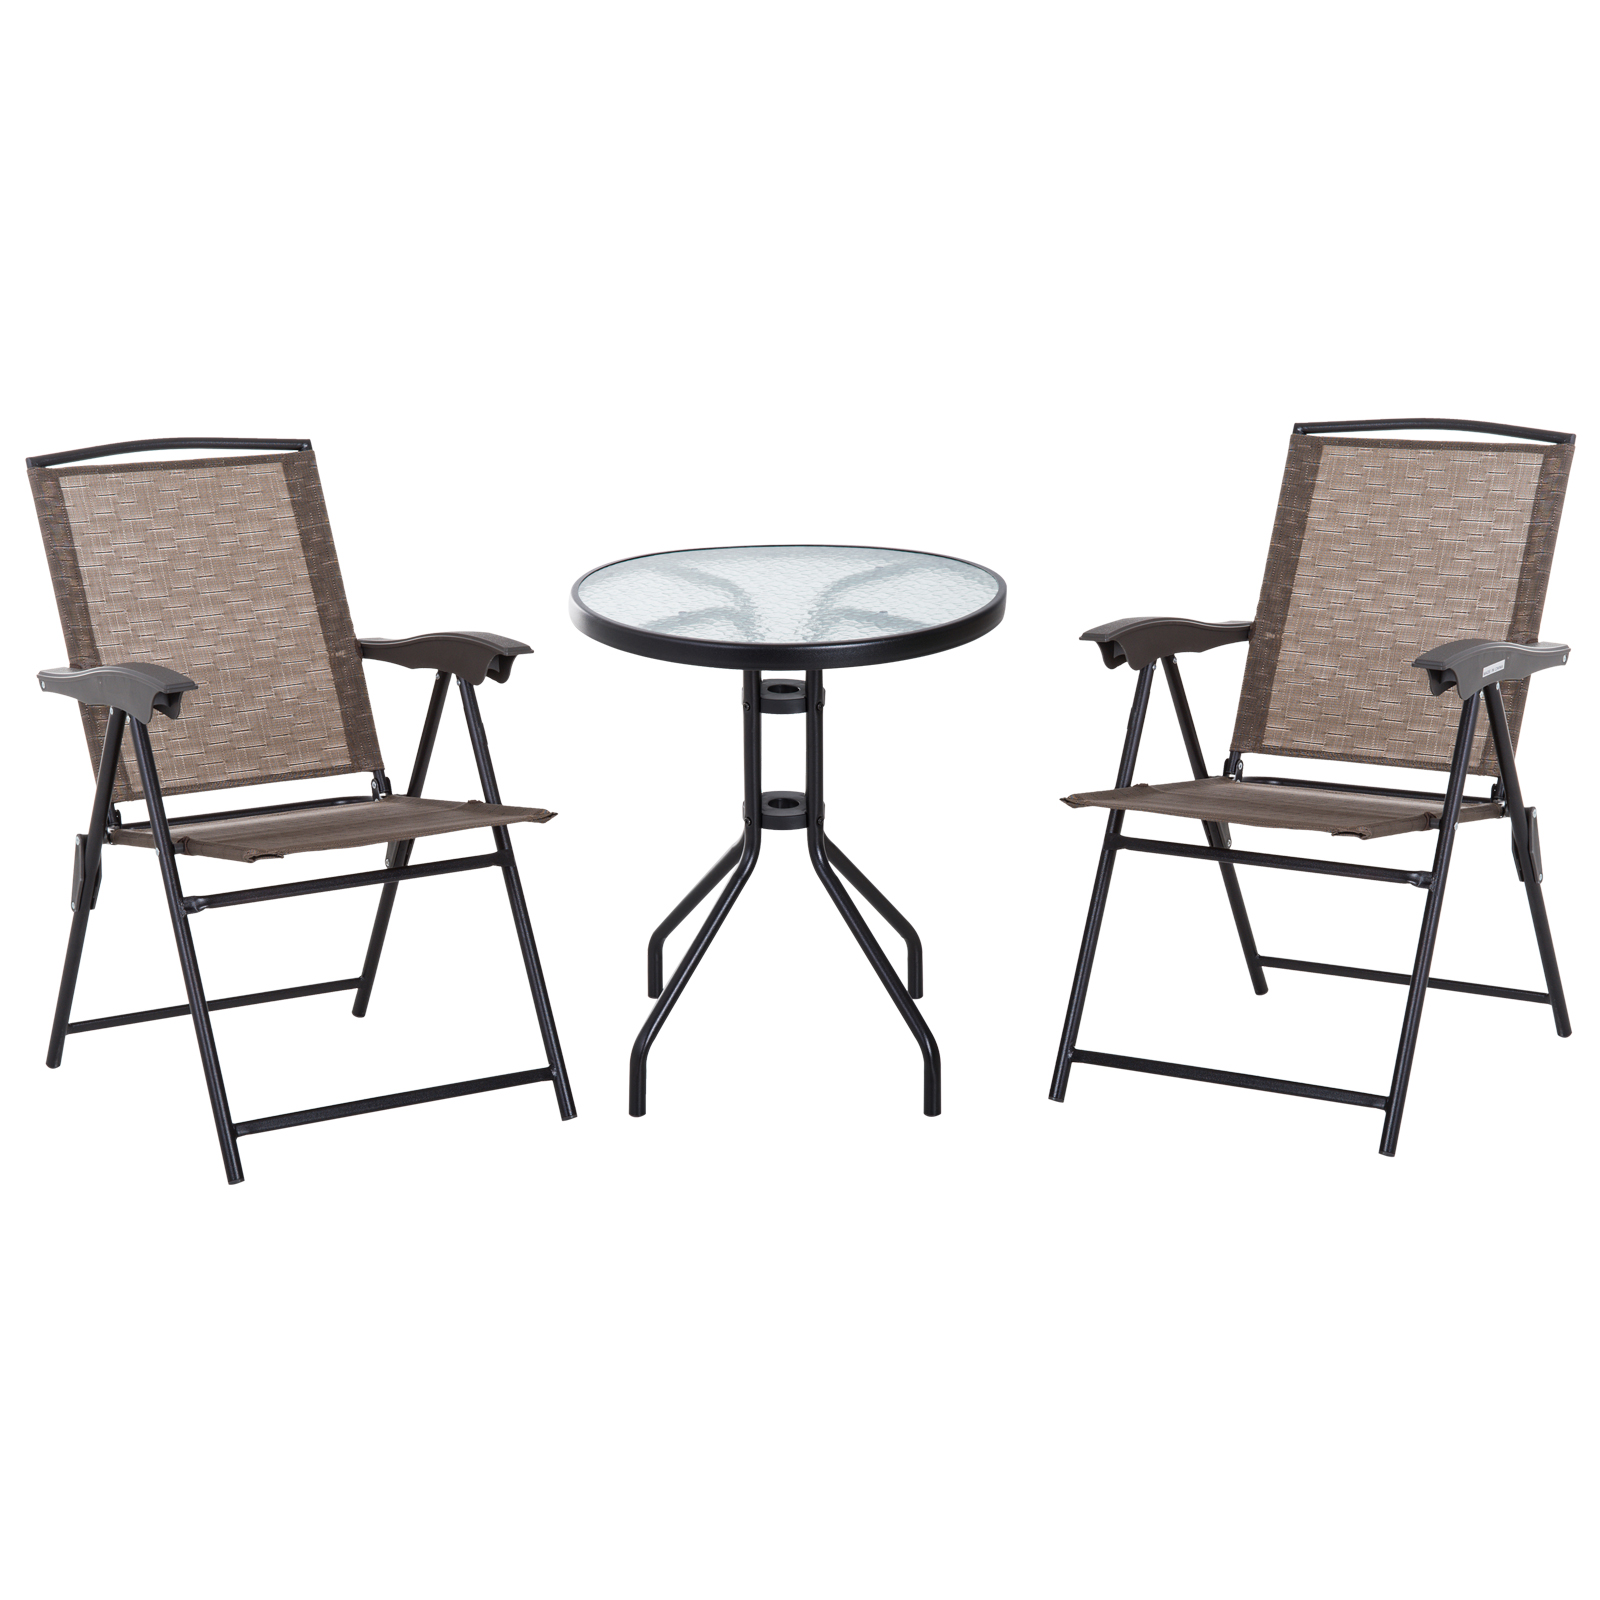 Ensemble de jardin 2 chaises inclinables pliables table ronde choco